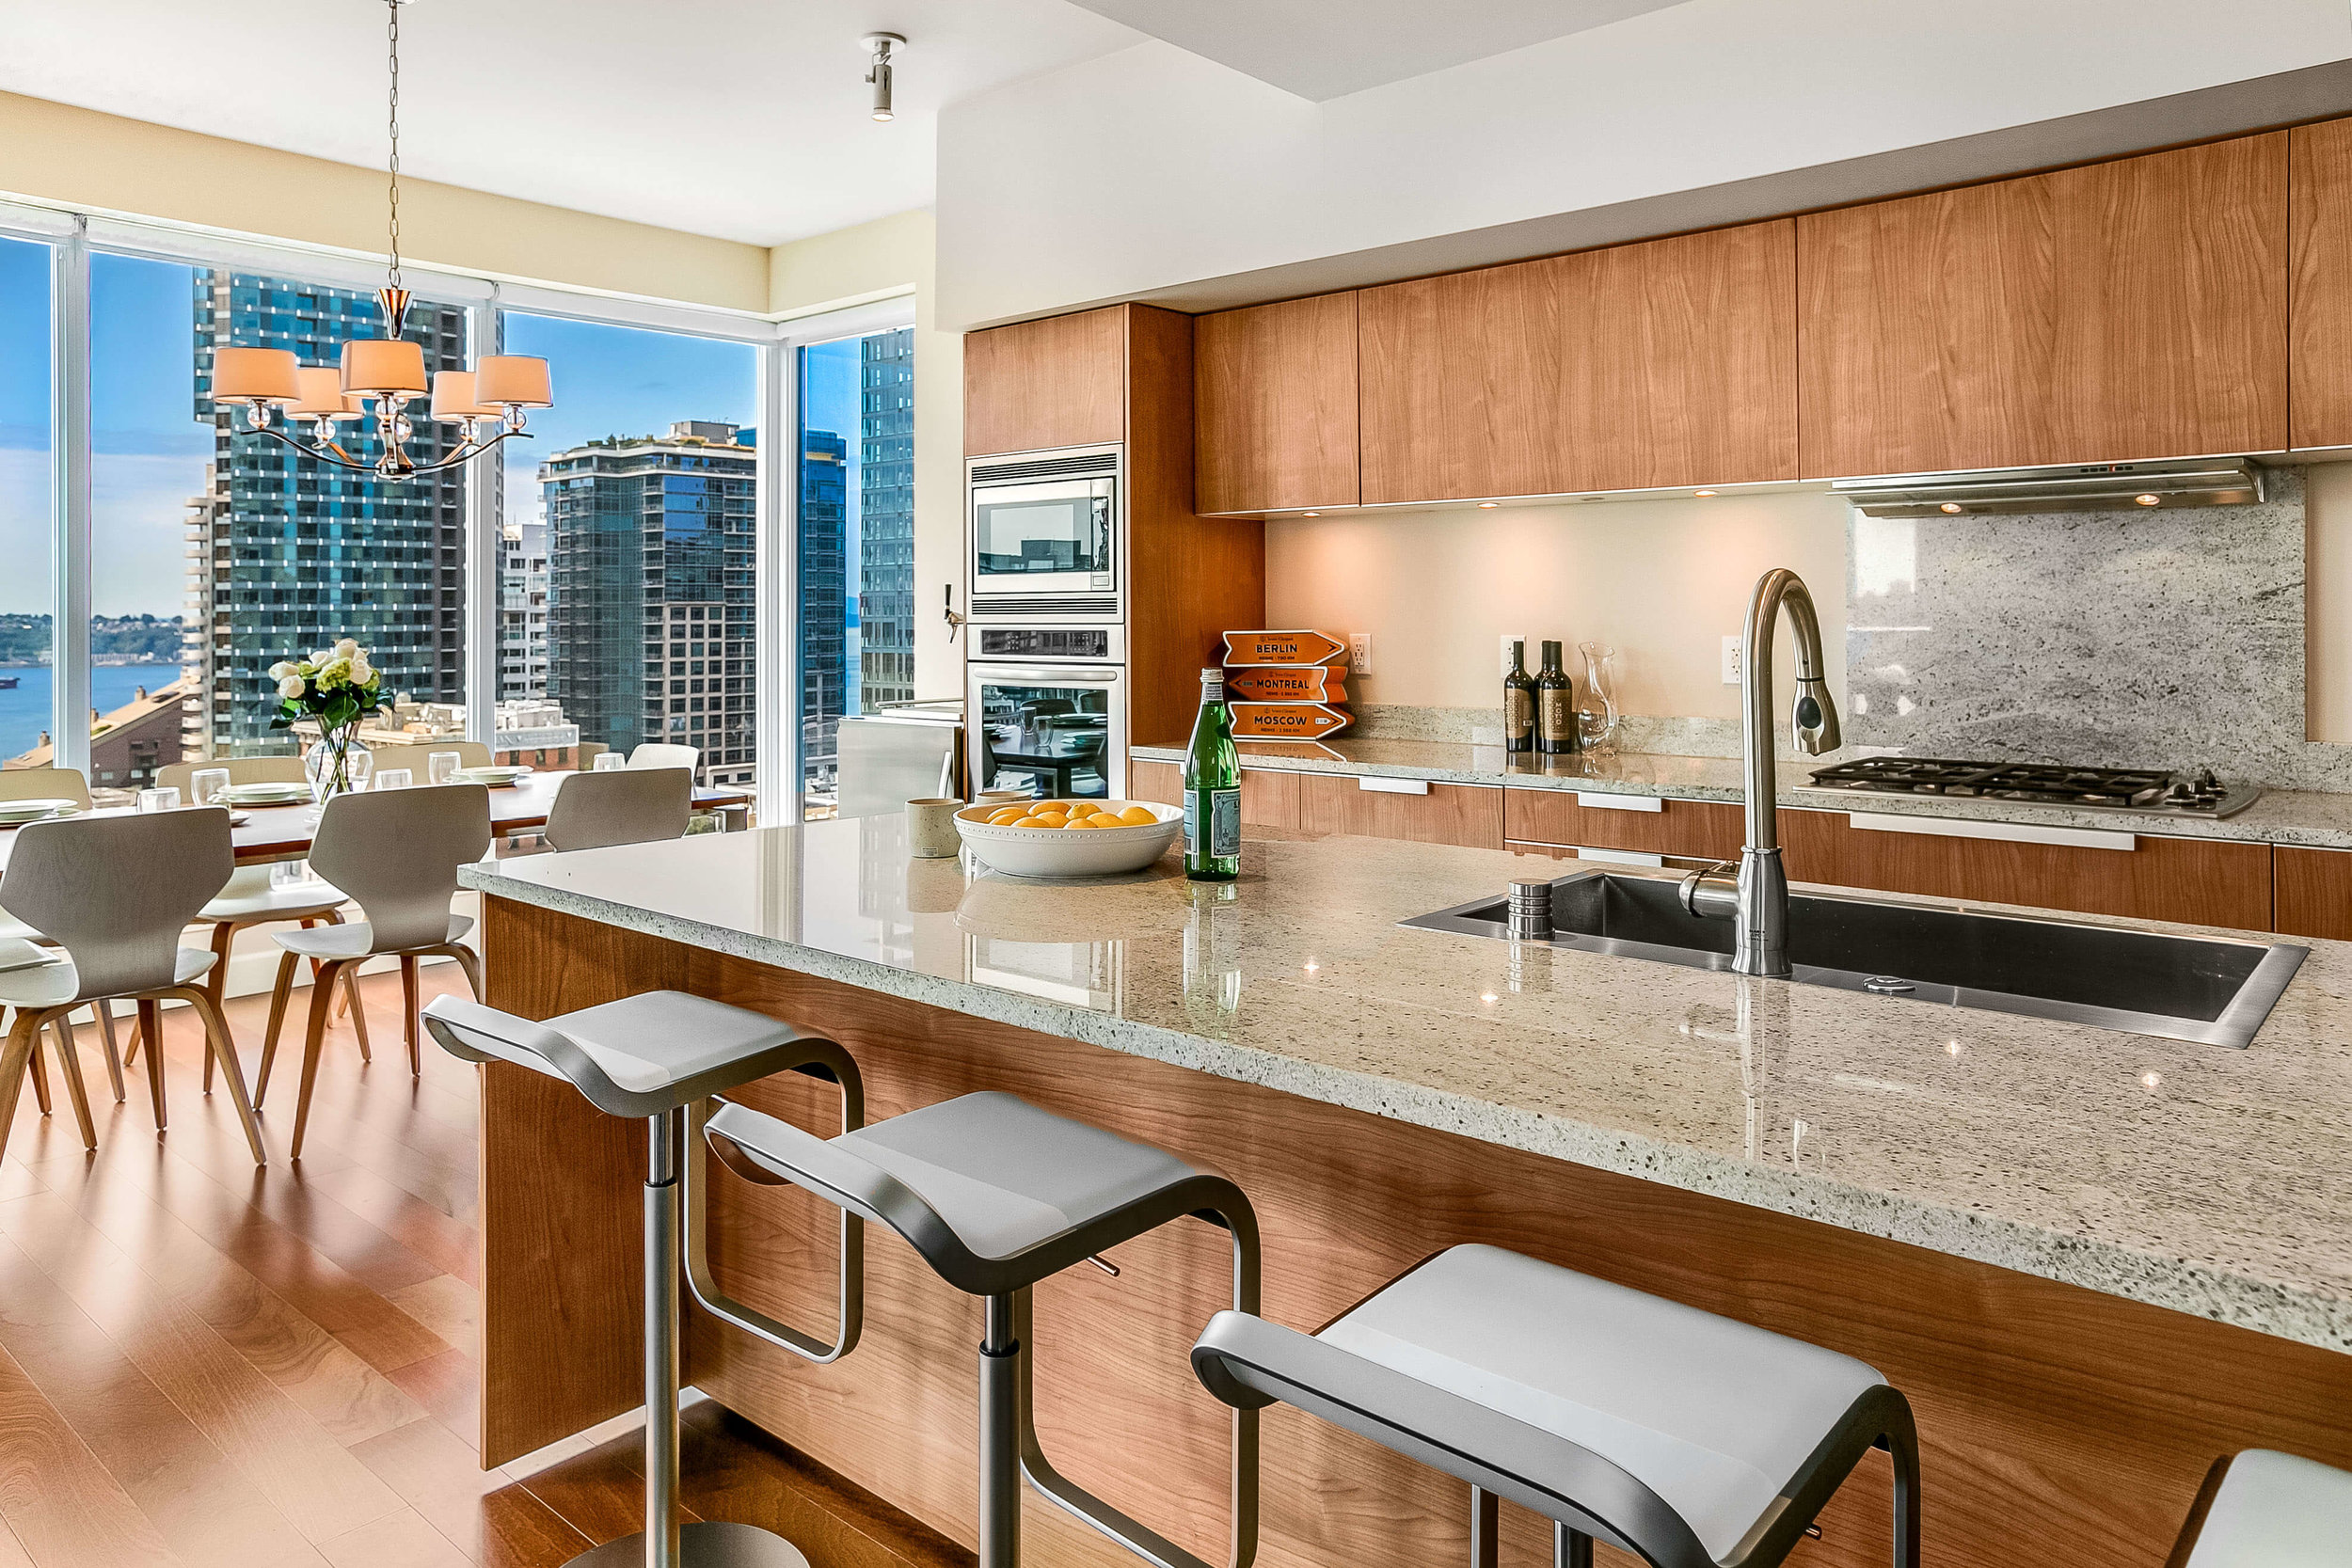 ESCALA # 1705 - 2 Bedrooms, 2 Bathrooms, 1,607 Square Feet2 Parking SpacesOffered at $1,720,000